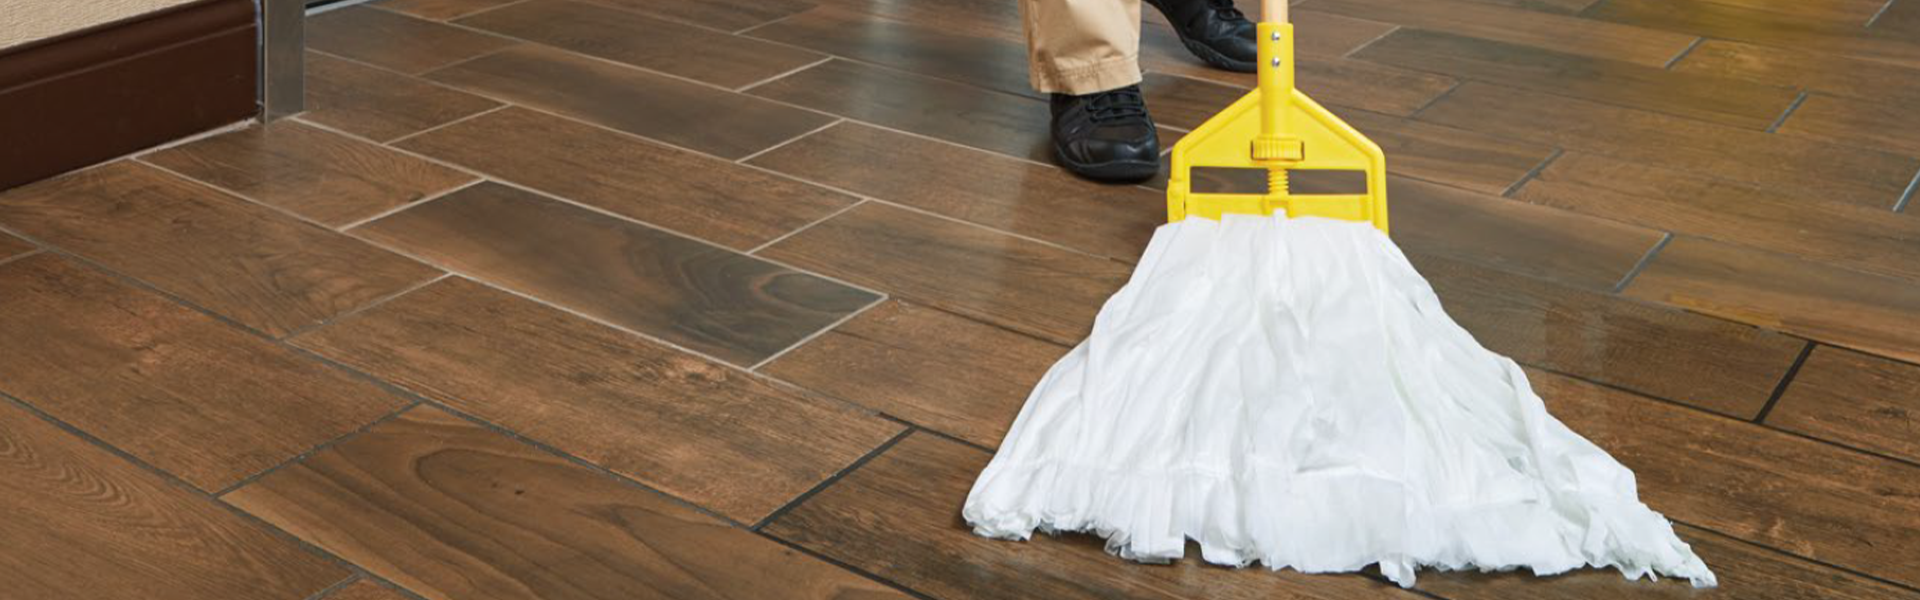 A wet mop cleaning a wood floor.